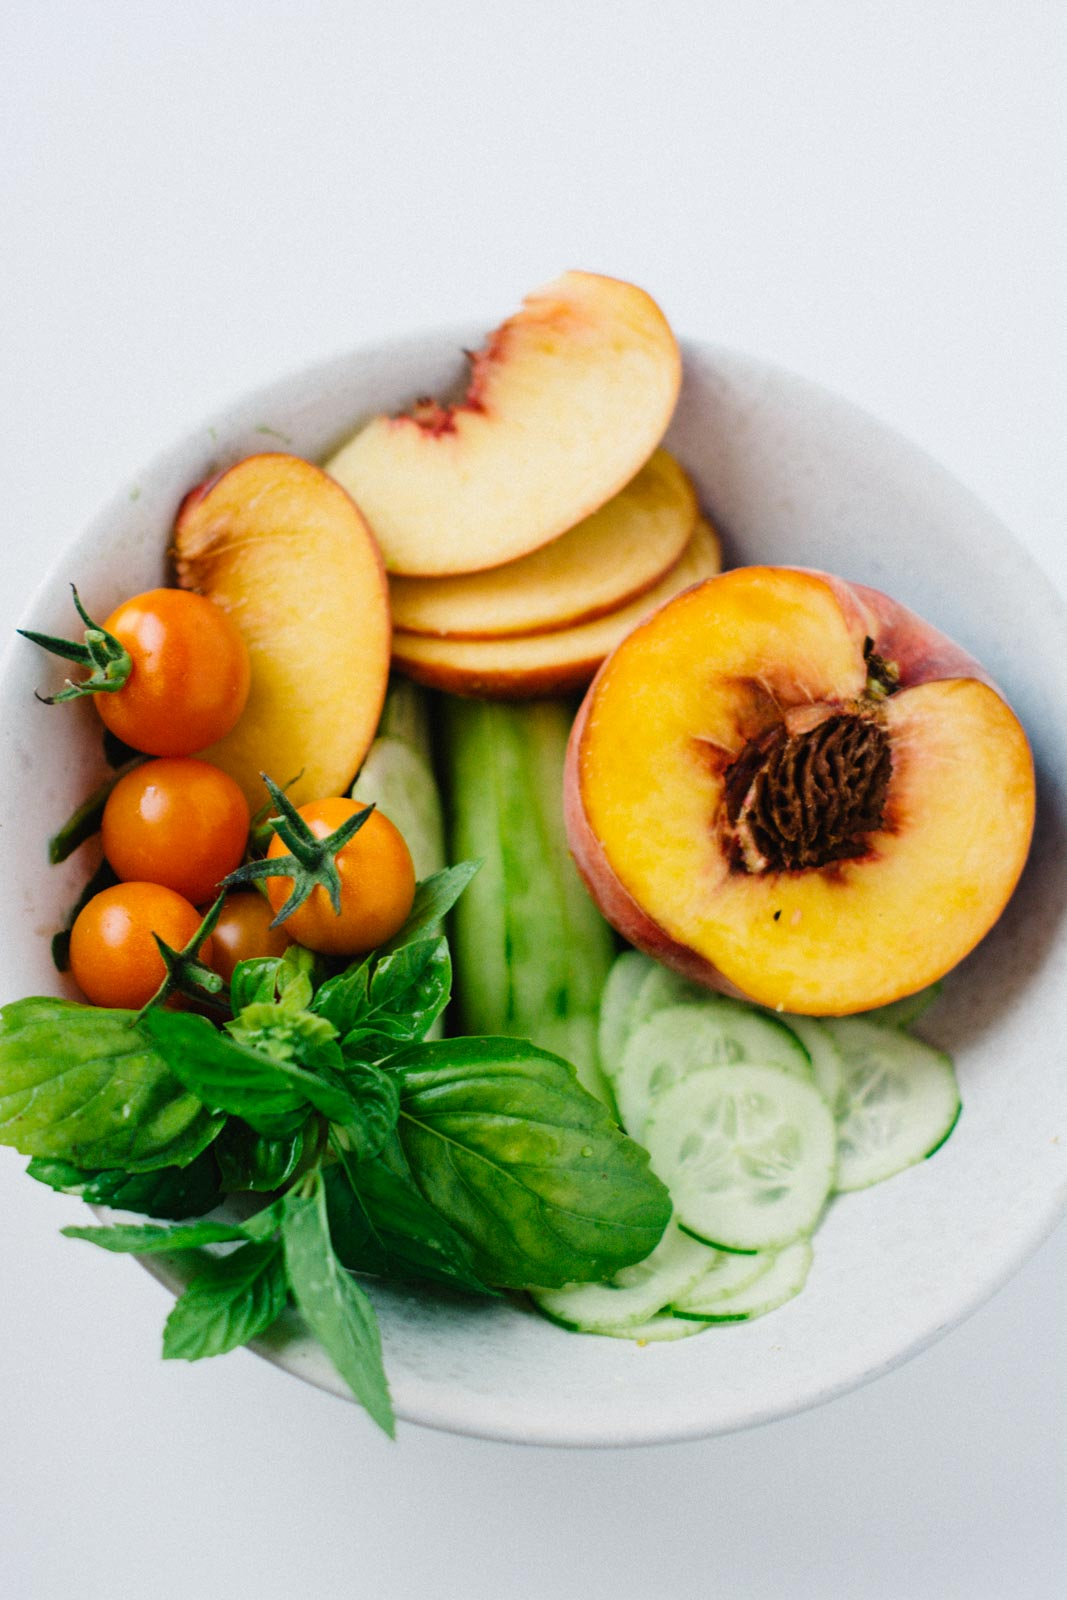 Heirloom tomato, peach and cucumber salad | www.scalingbackblog.com